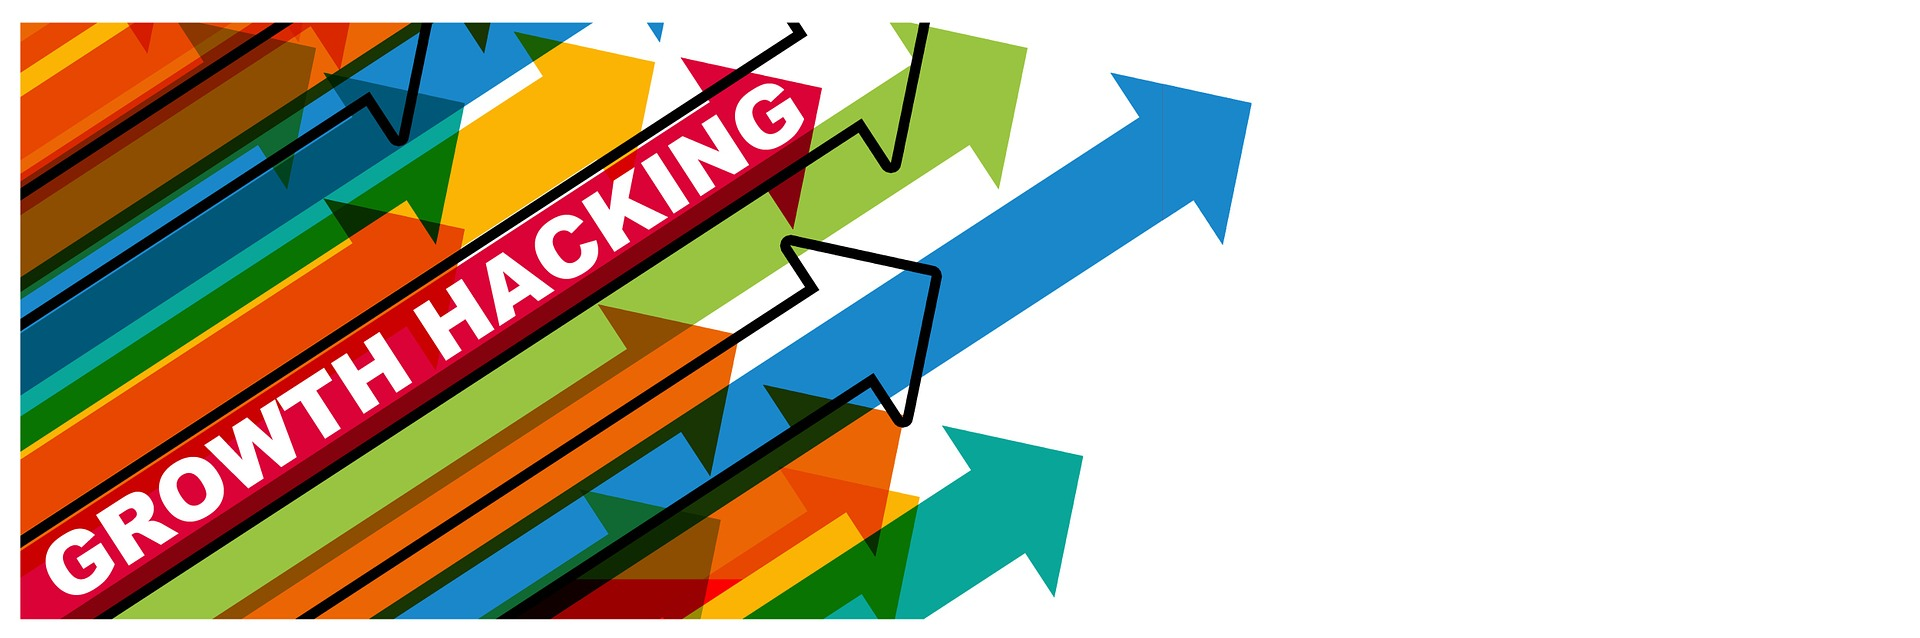 growth hacking arrows